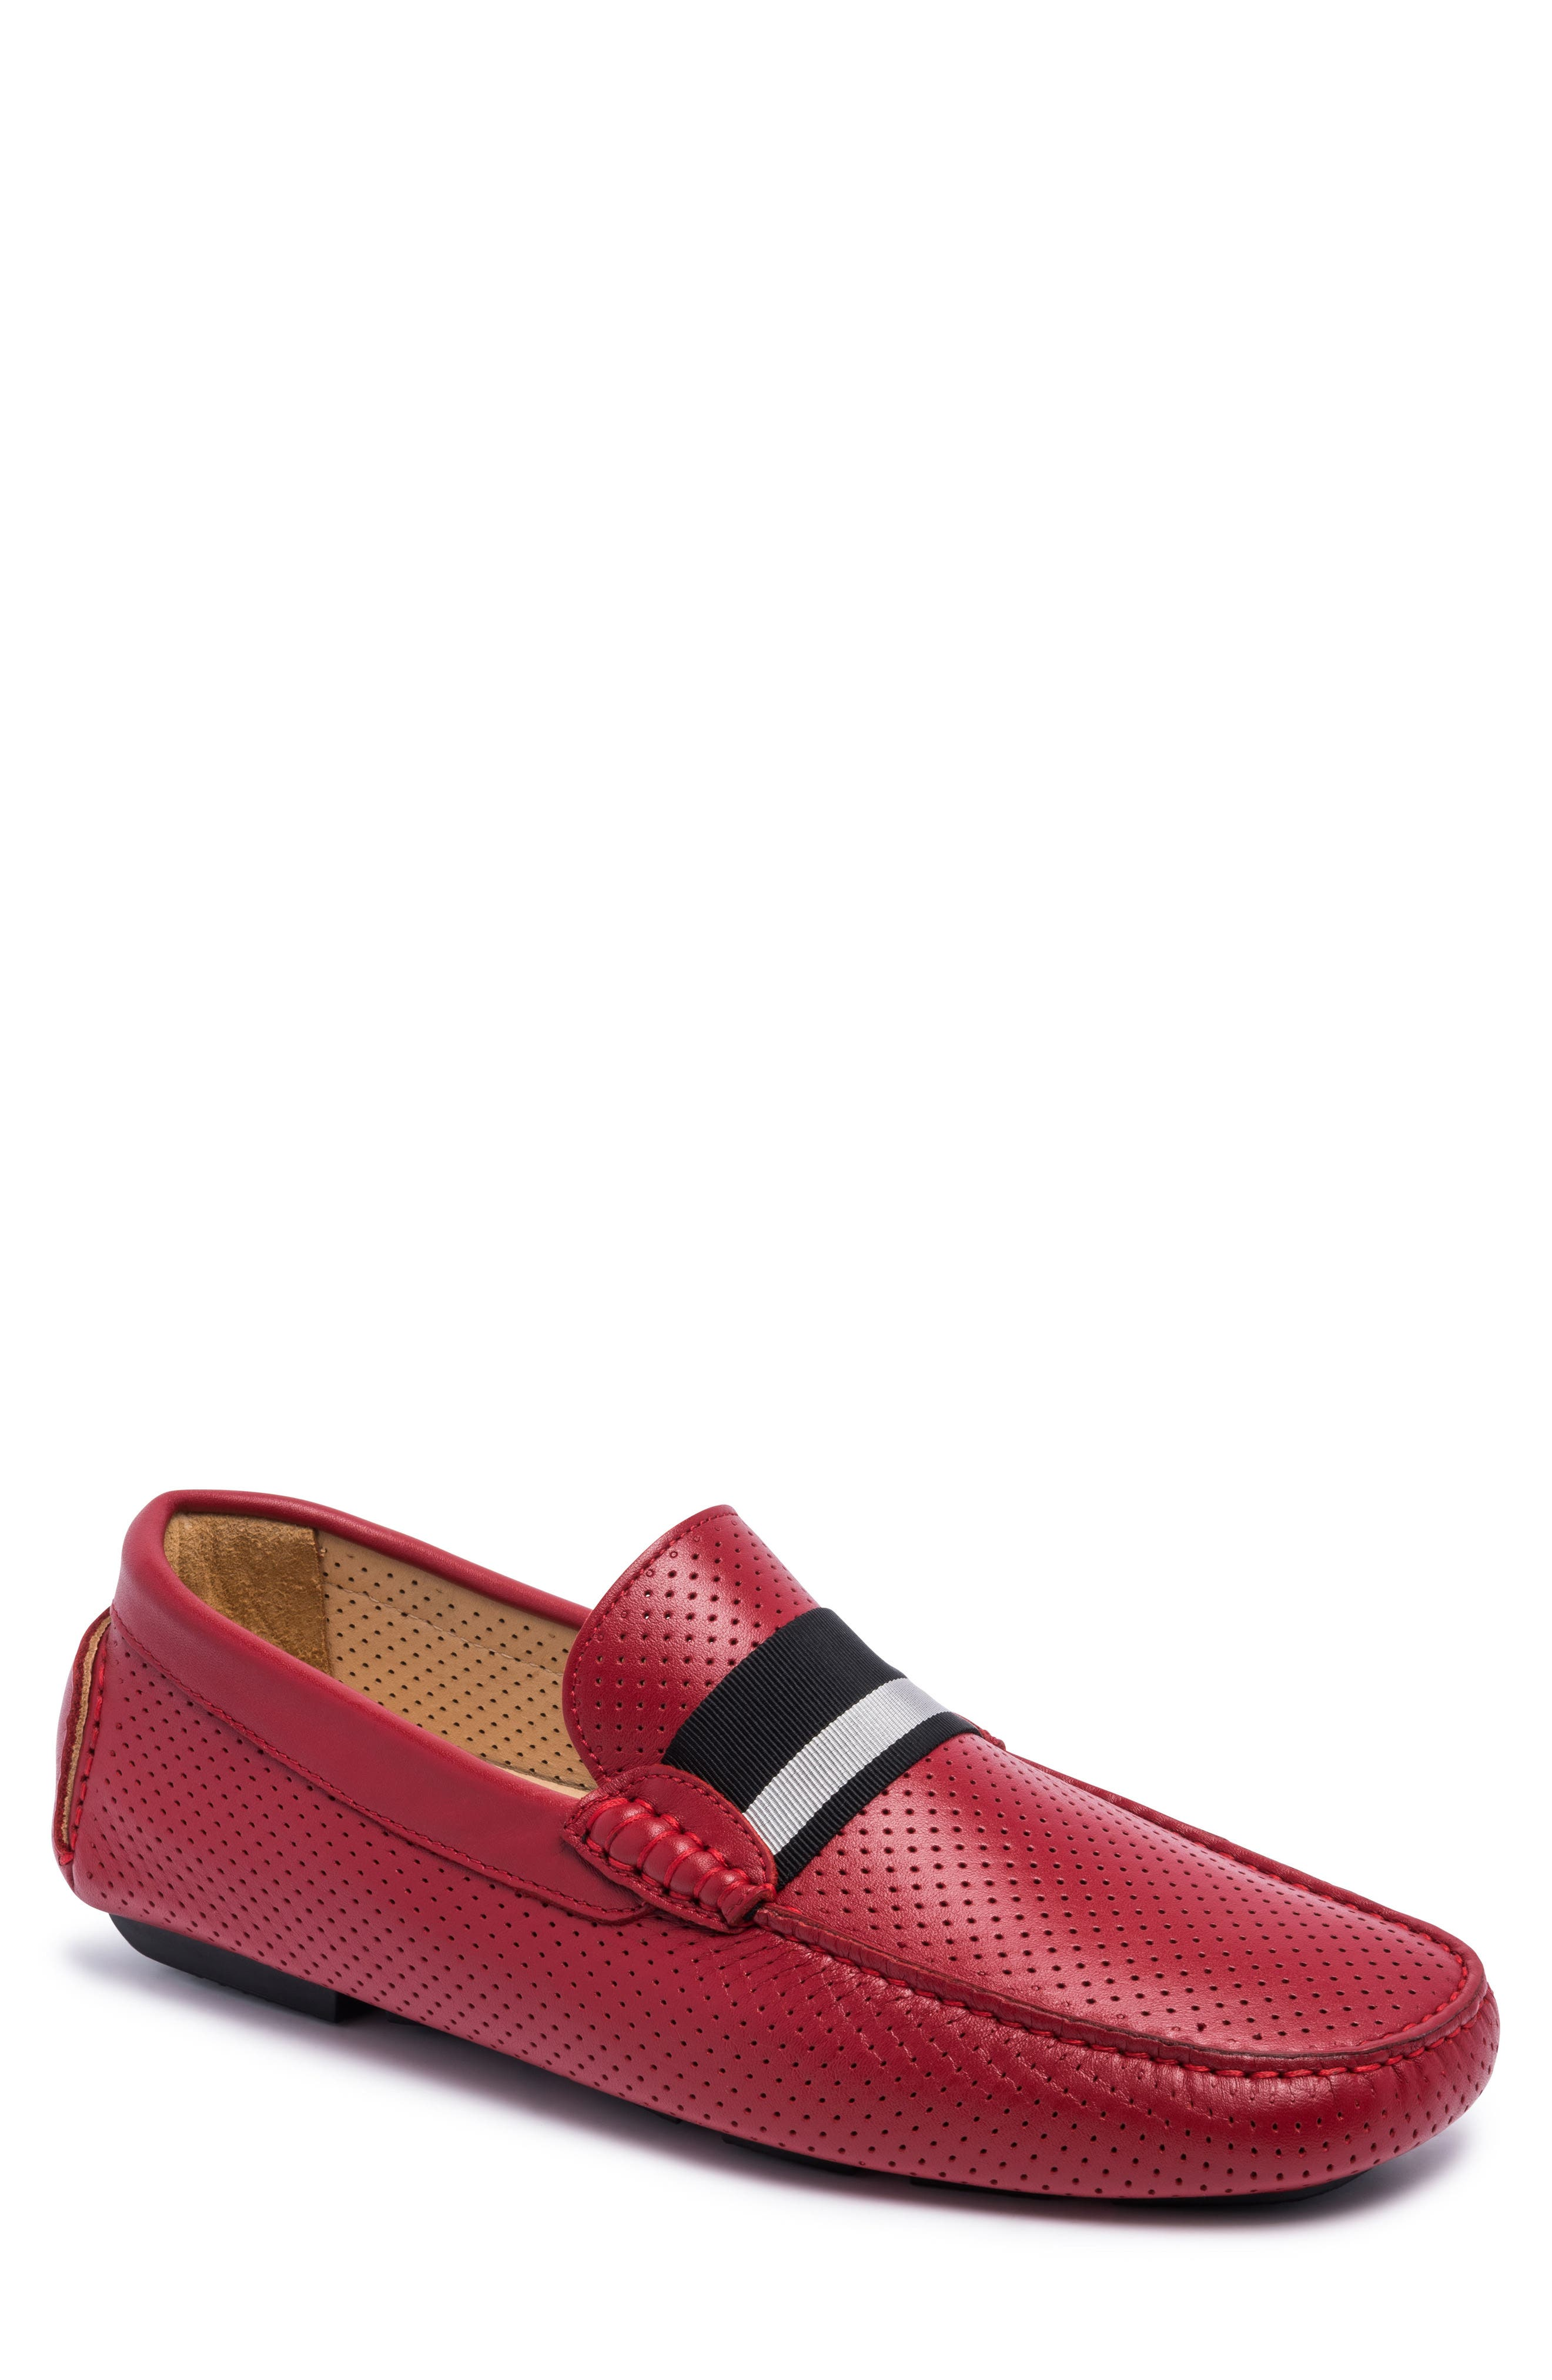 Sardegna Driving Shoe,                         Main,                         color, Red Leather